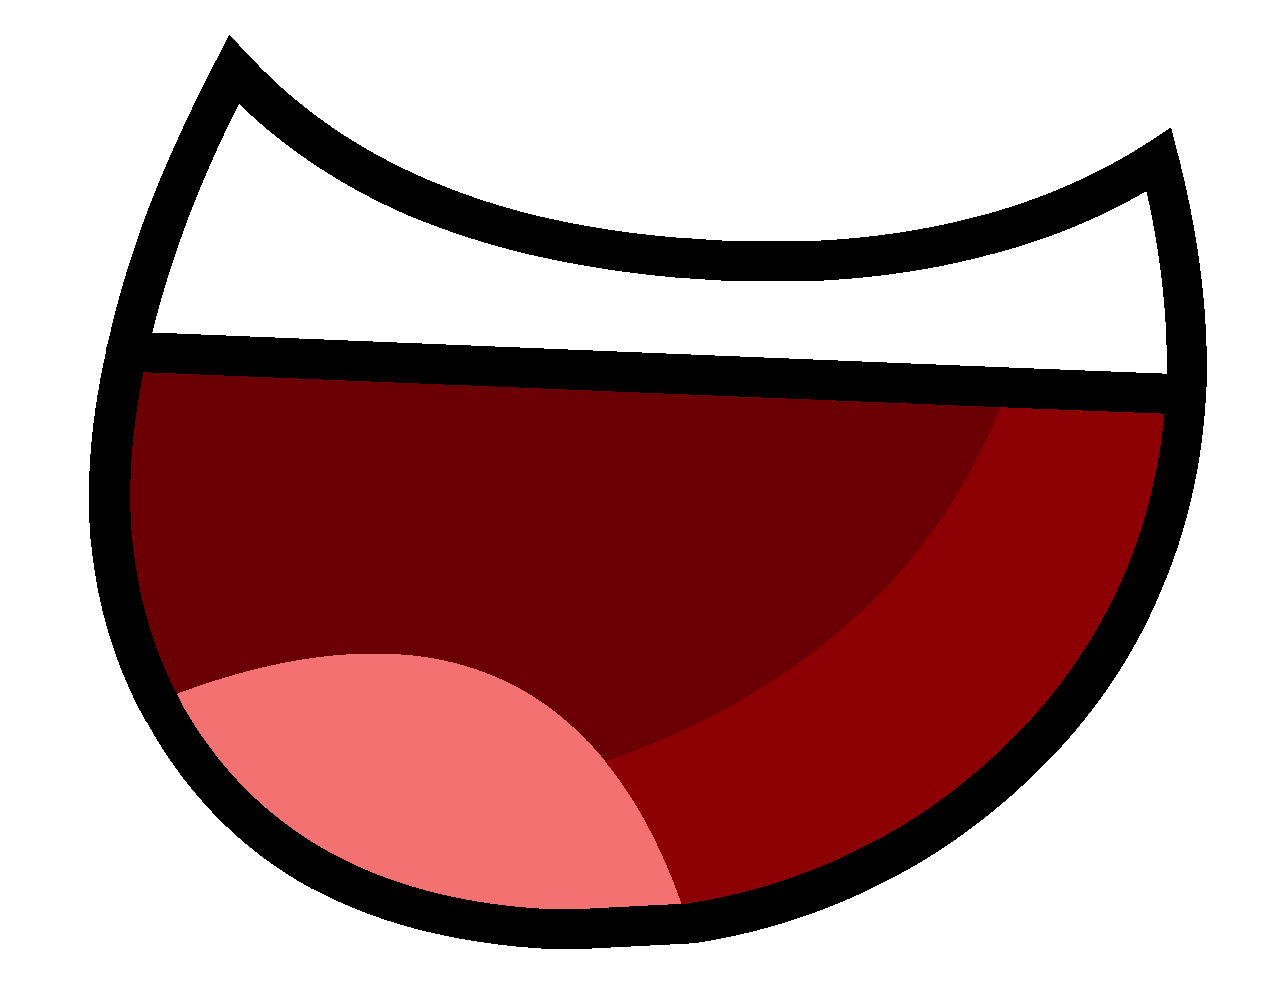 Smile mouth png. Free animated cliparts download